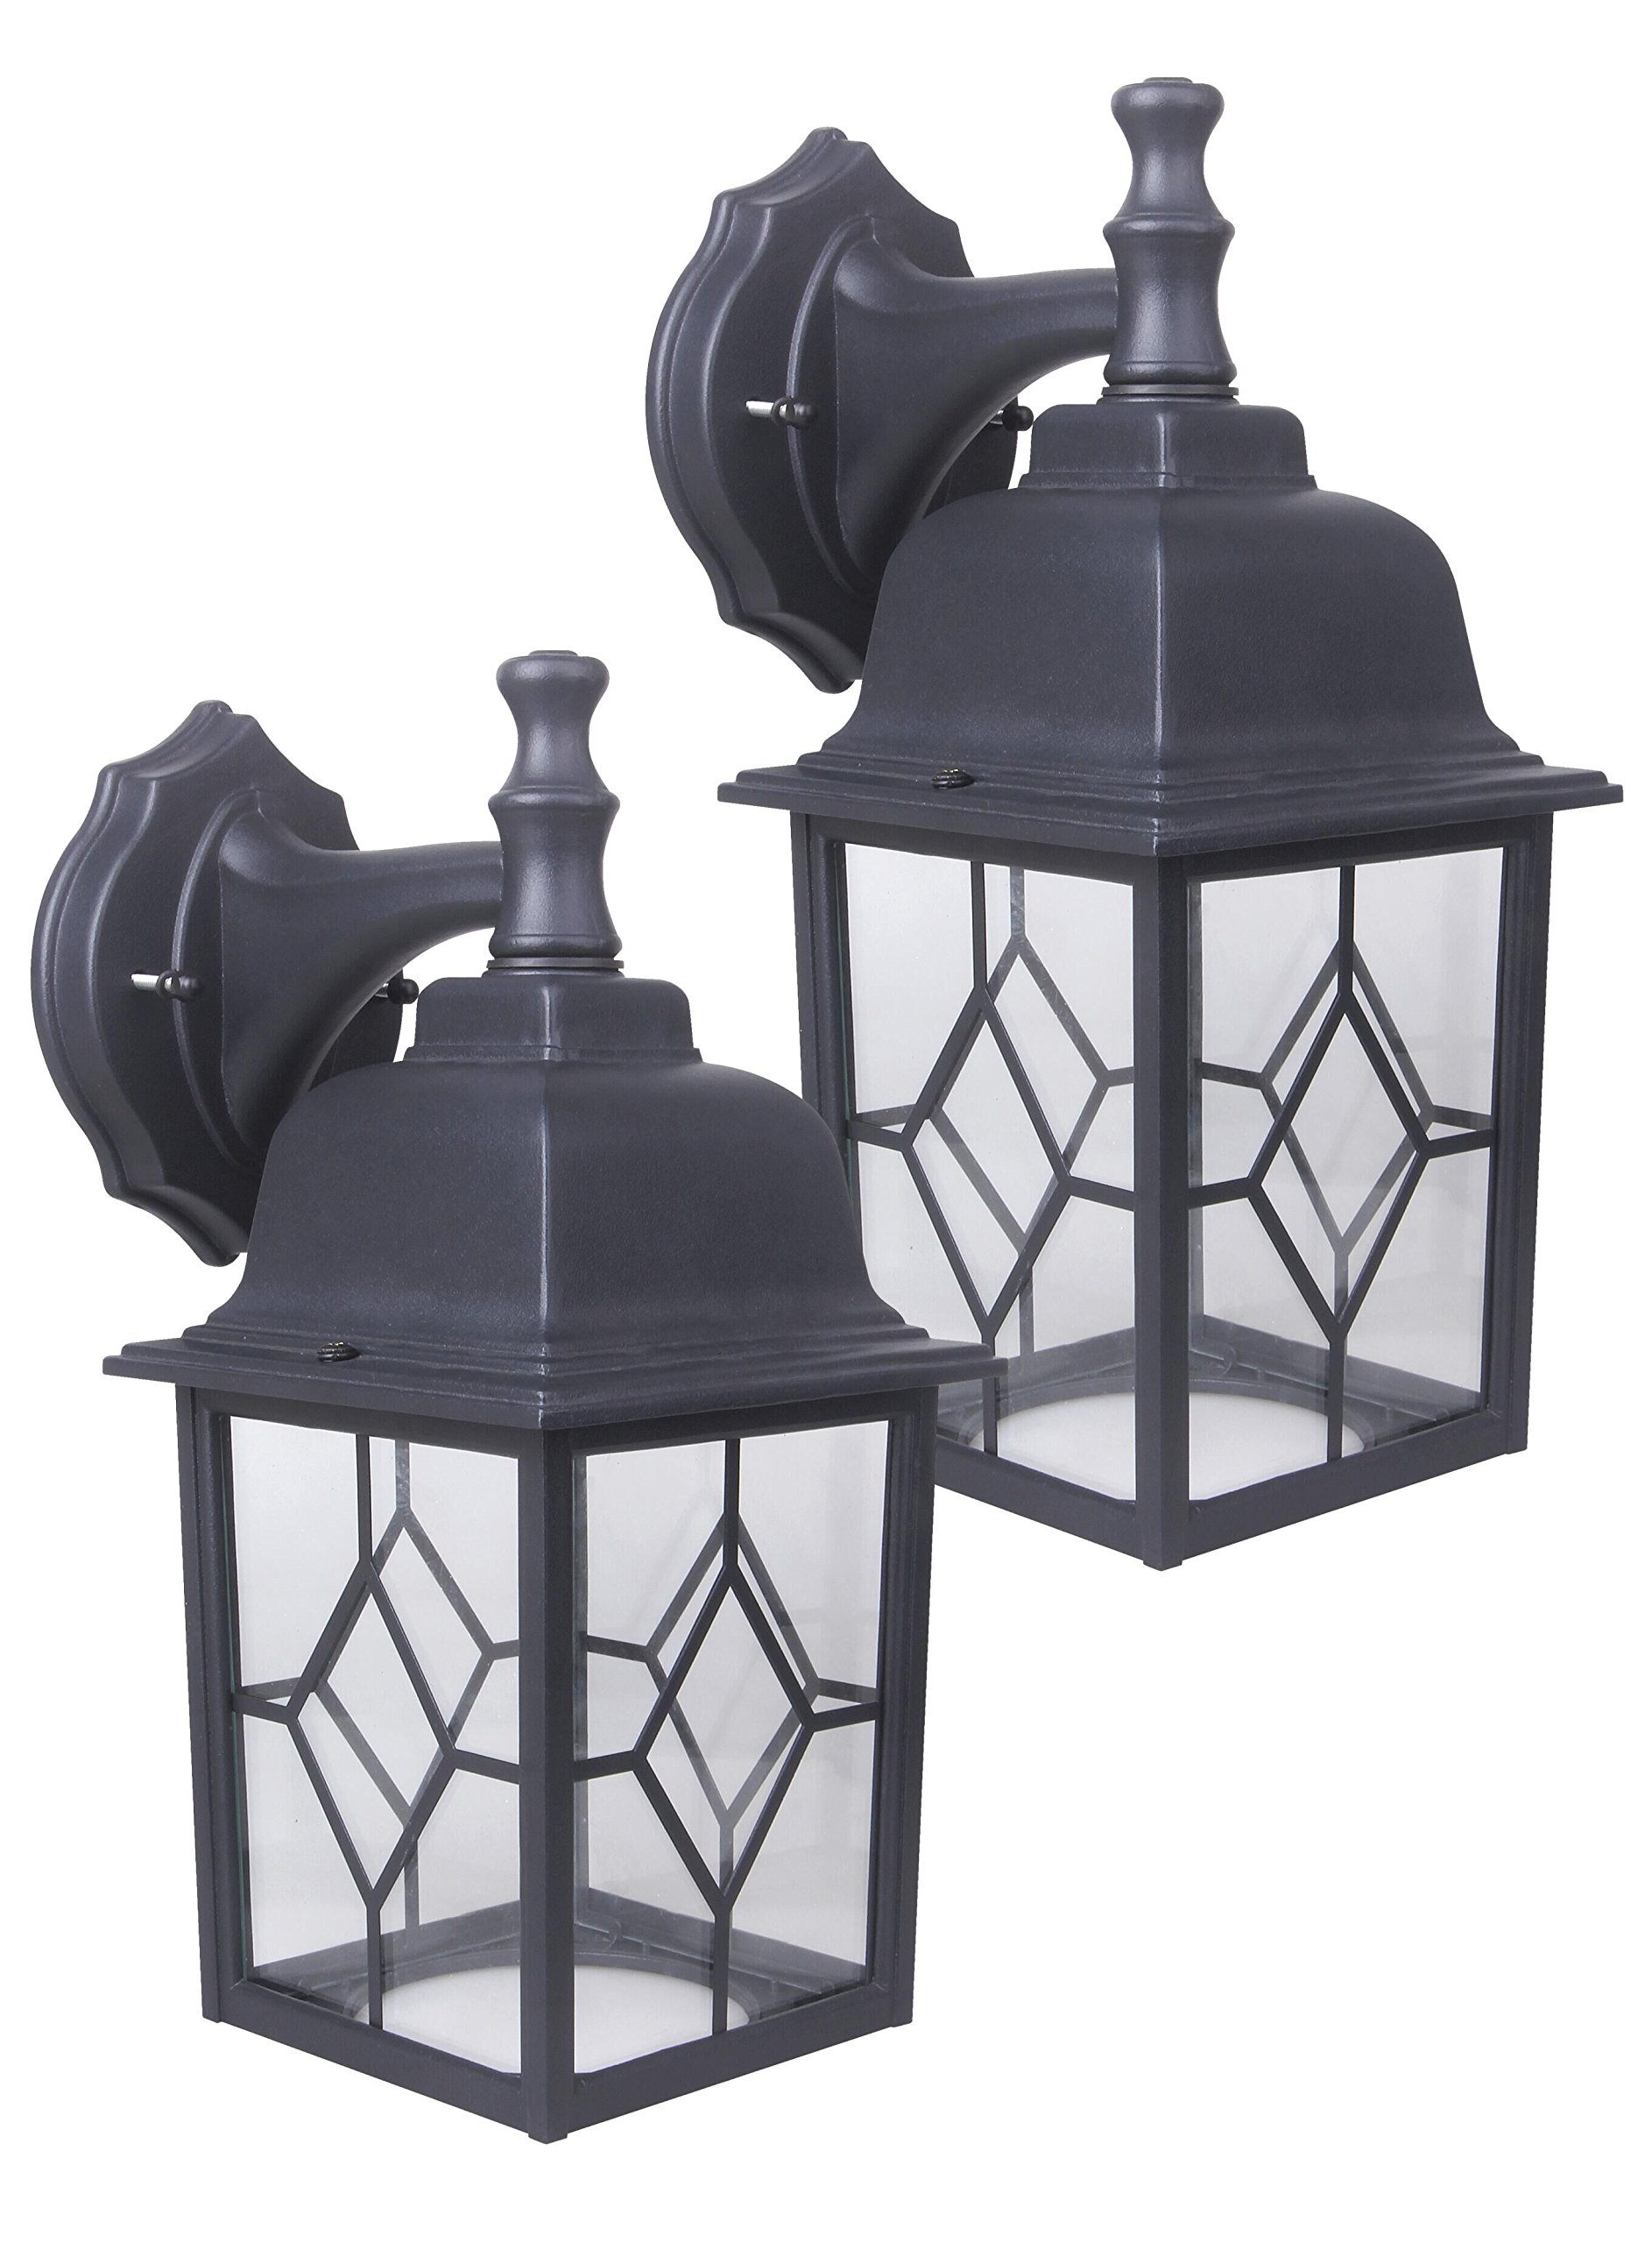 CORAMDEO Outdoor LED Wall Lantern, Wall Sconce 11W Replace 100W Traditional Lighting Fixtures, 1000 Lumen, Water-Proof, Aluminum Housing Plus Glass, ETL and Energy Star Certified, 2-Pack